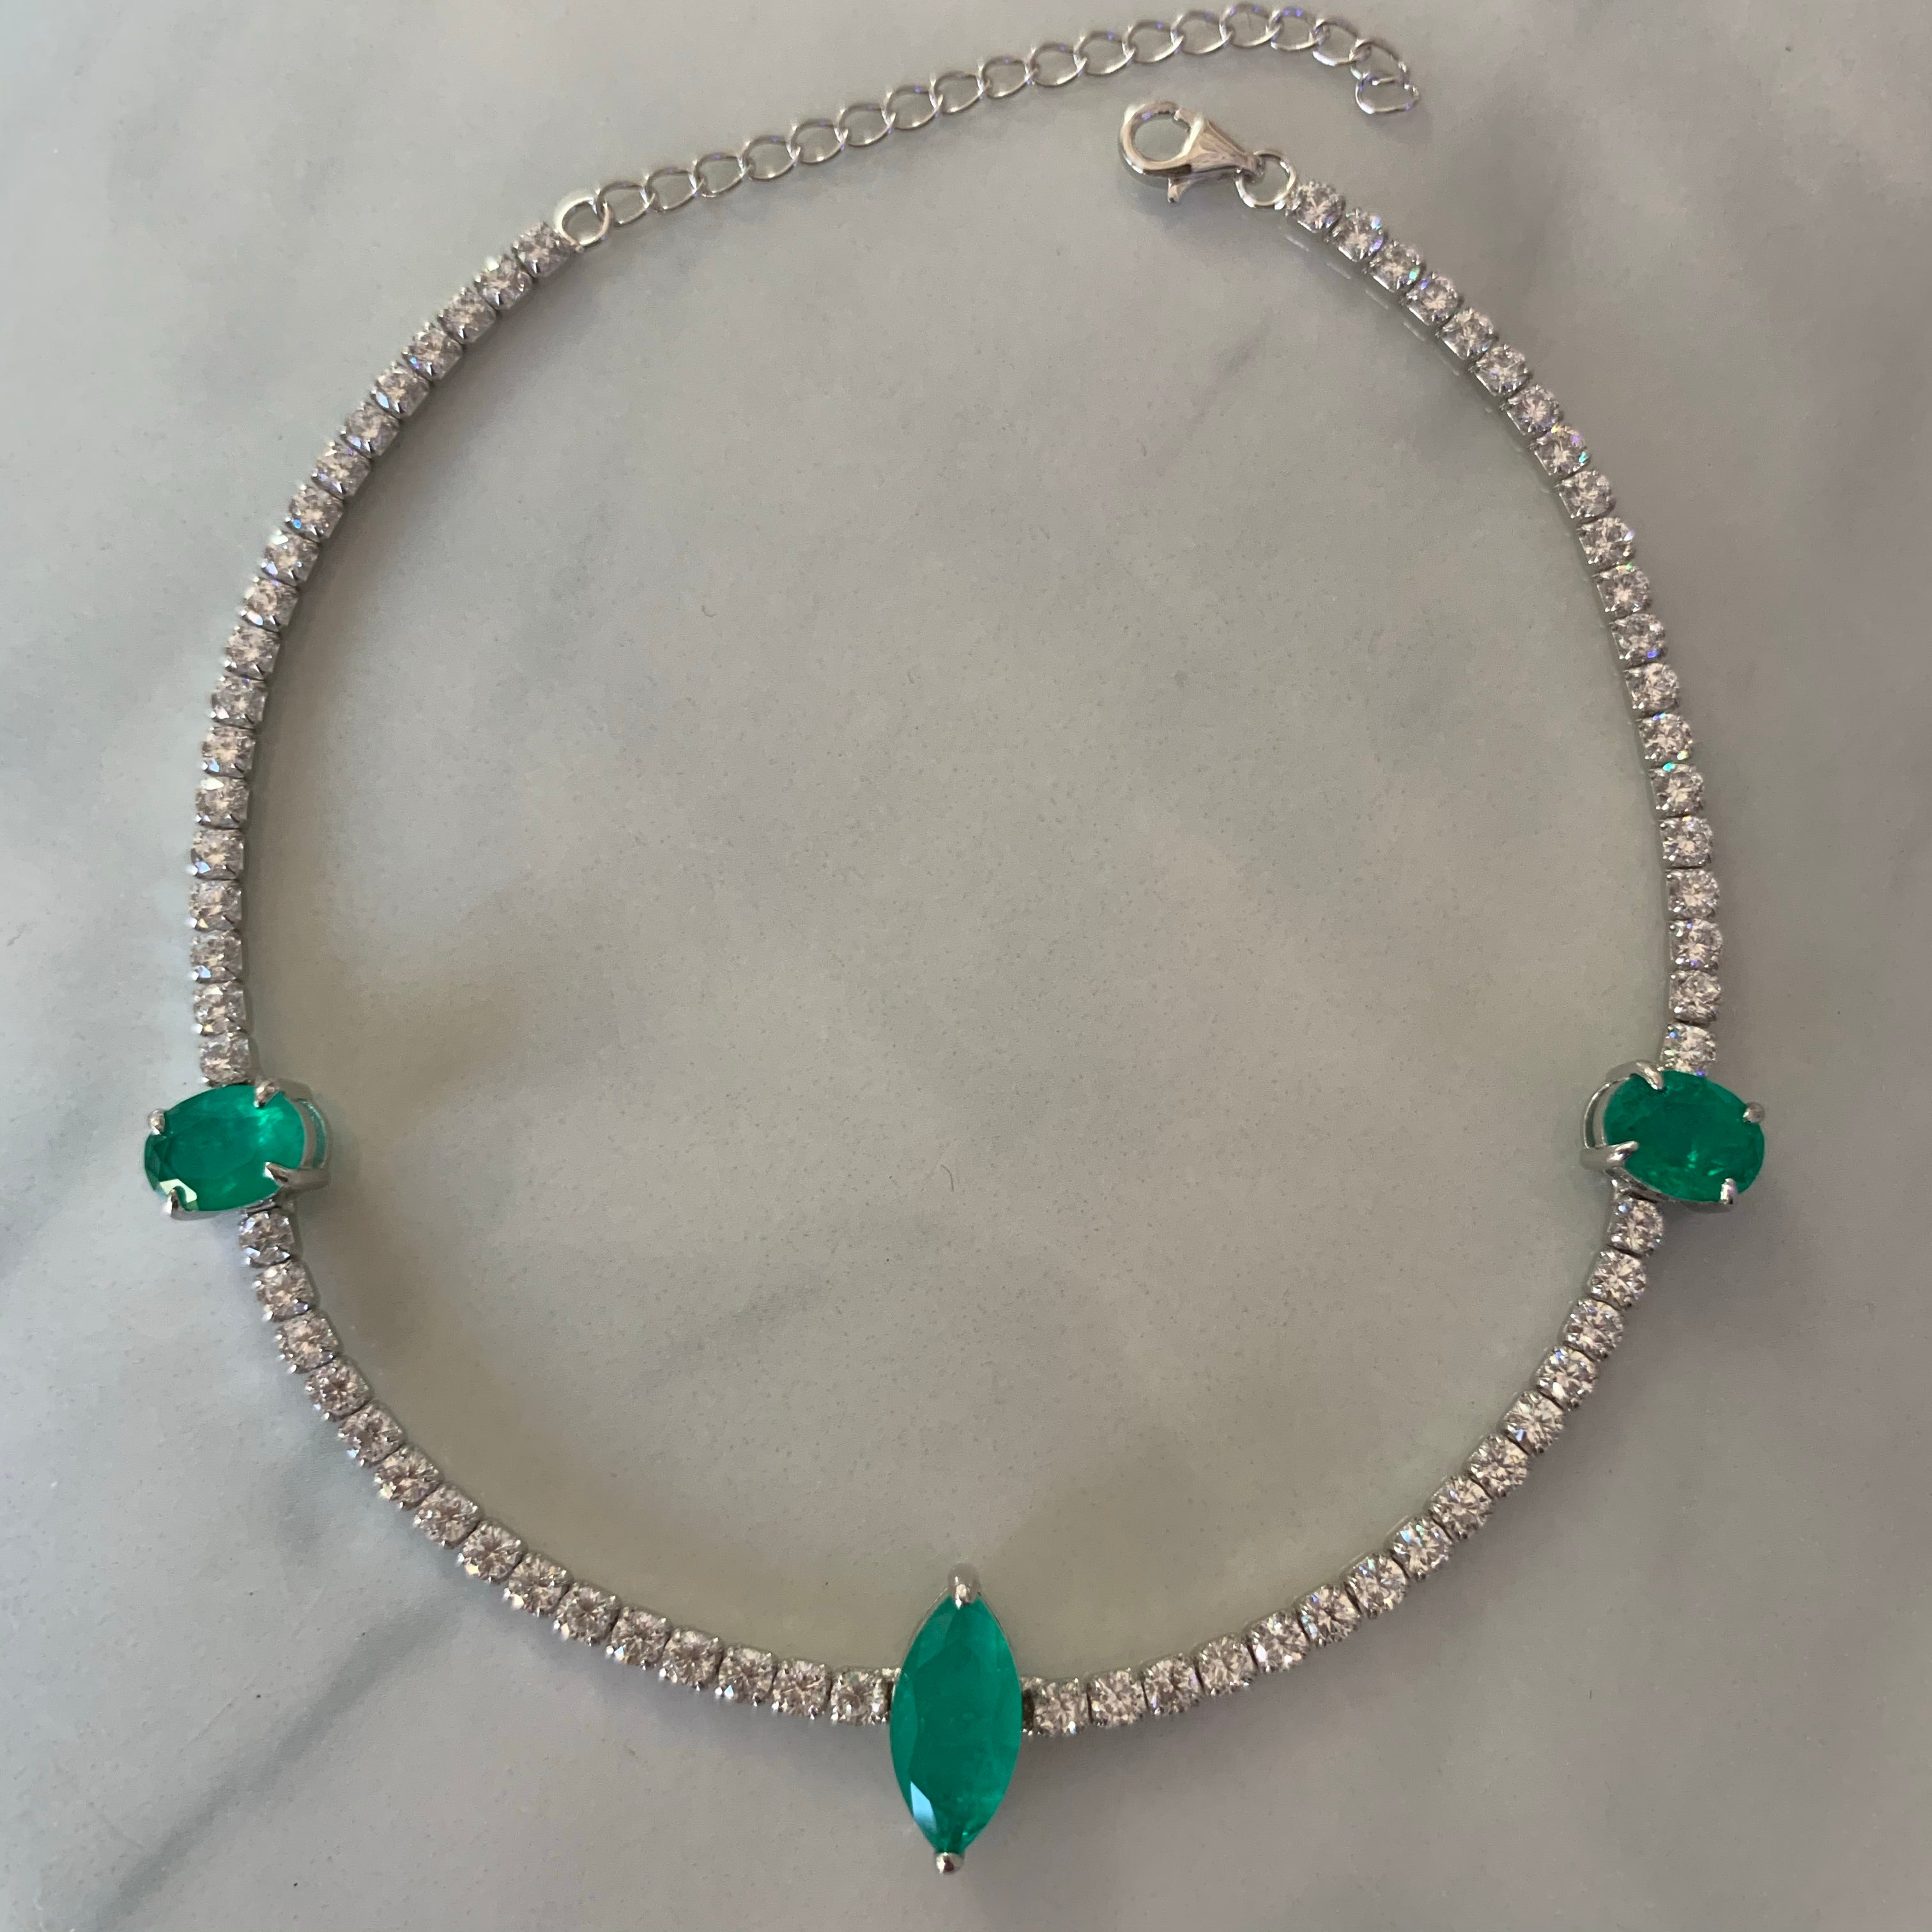 Sterling silver paraiba anklets